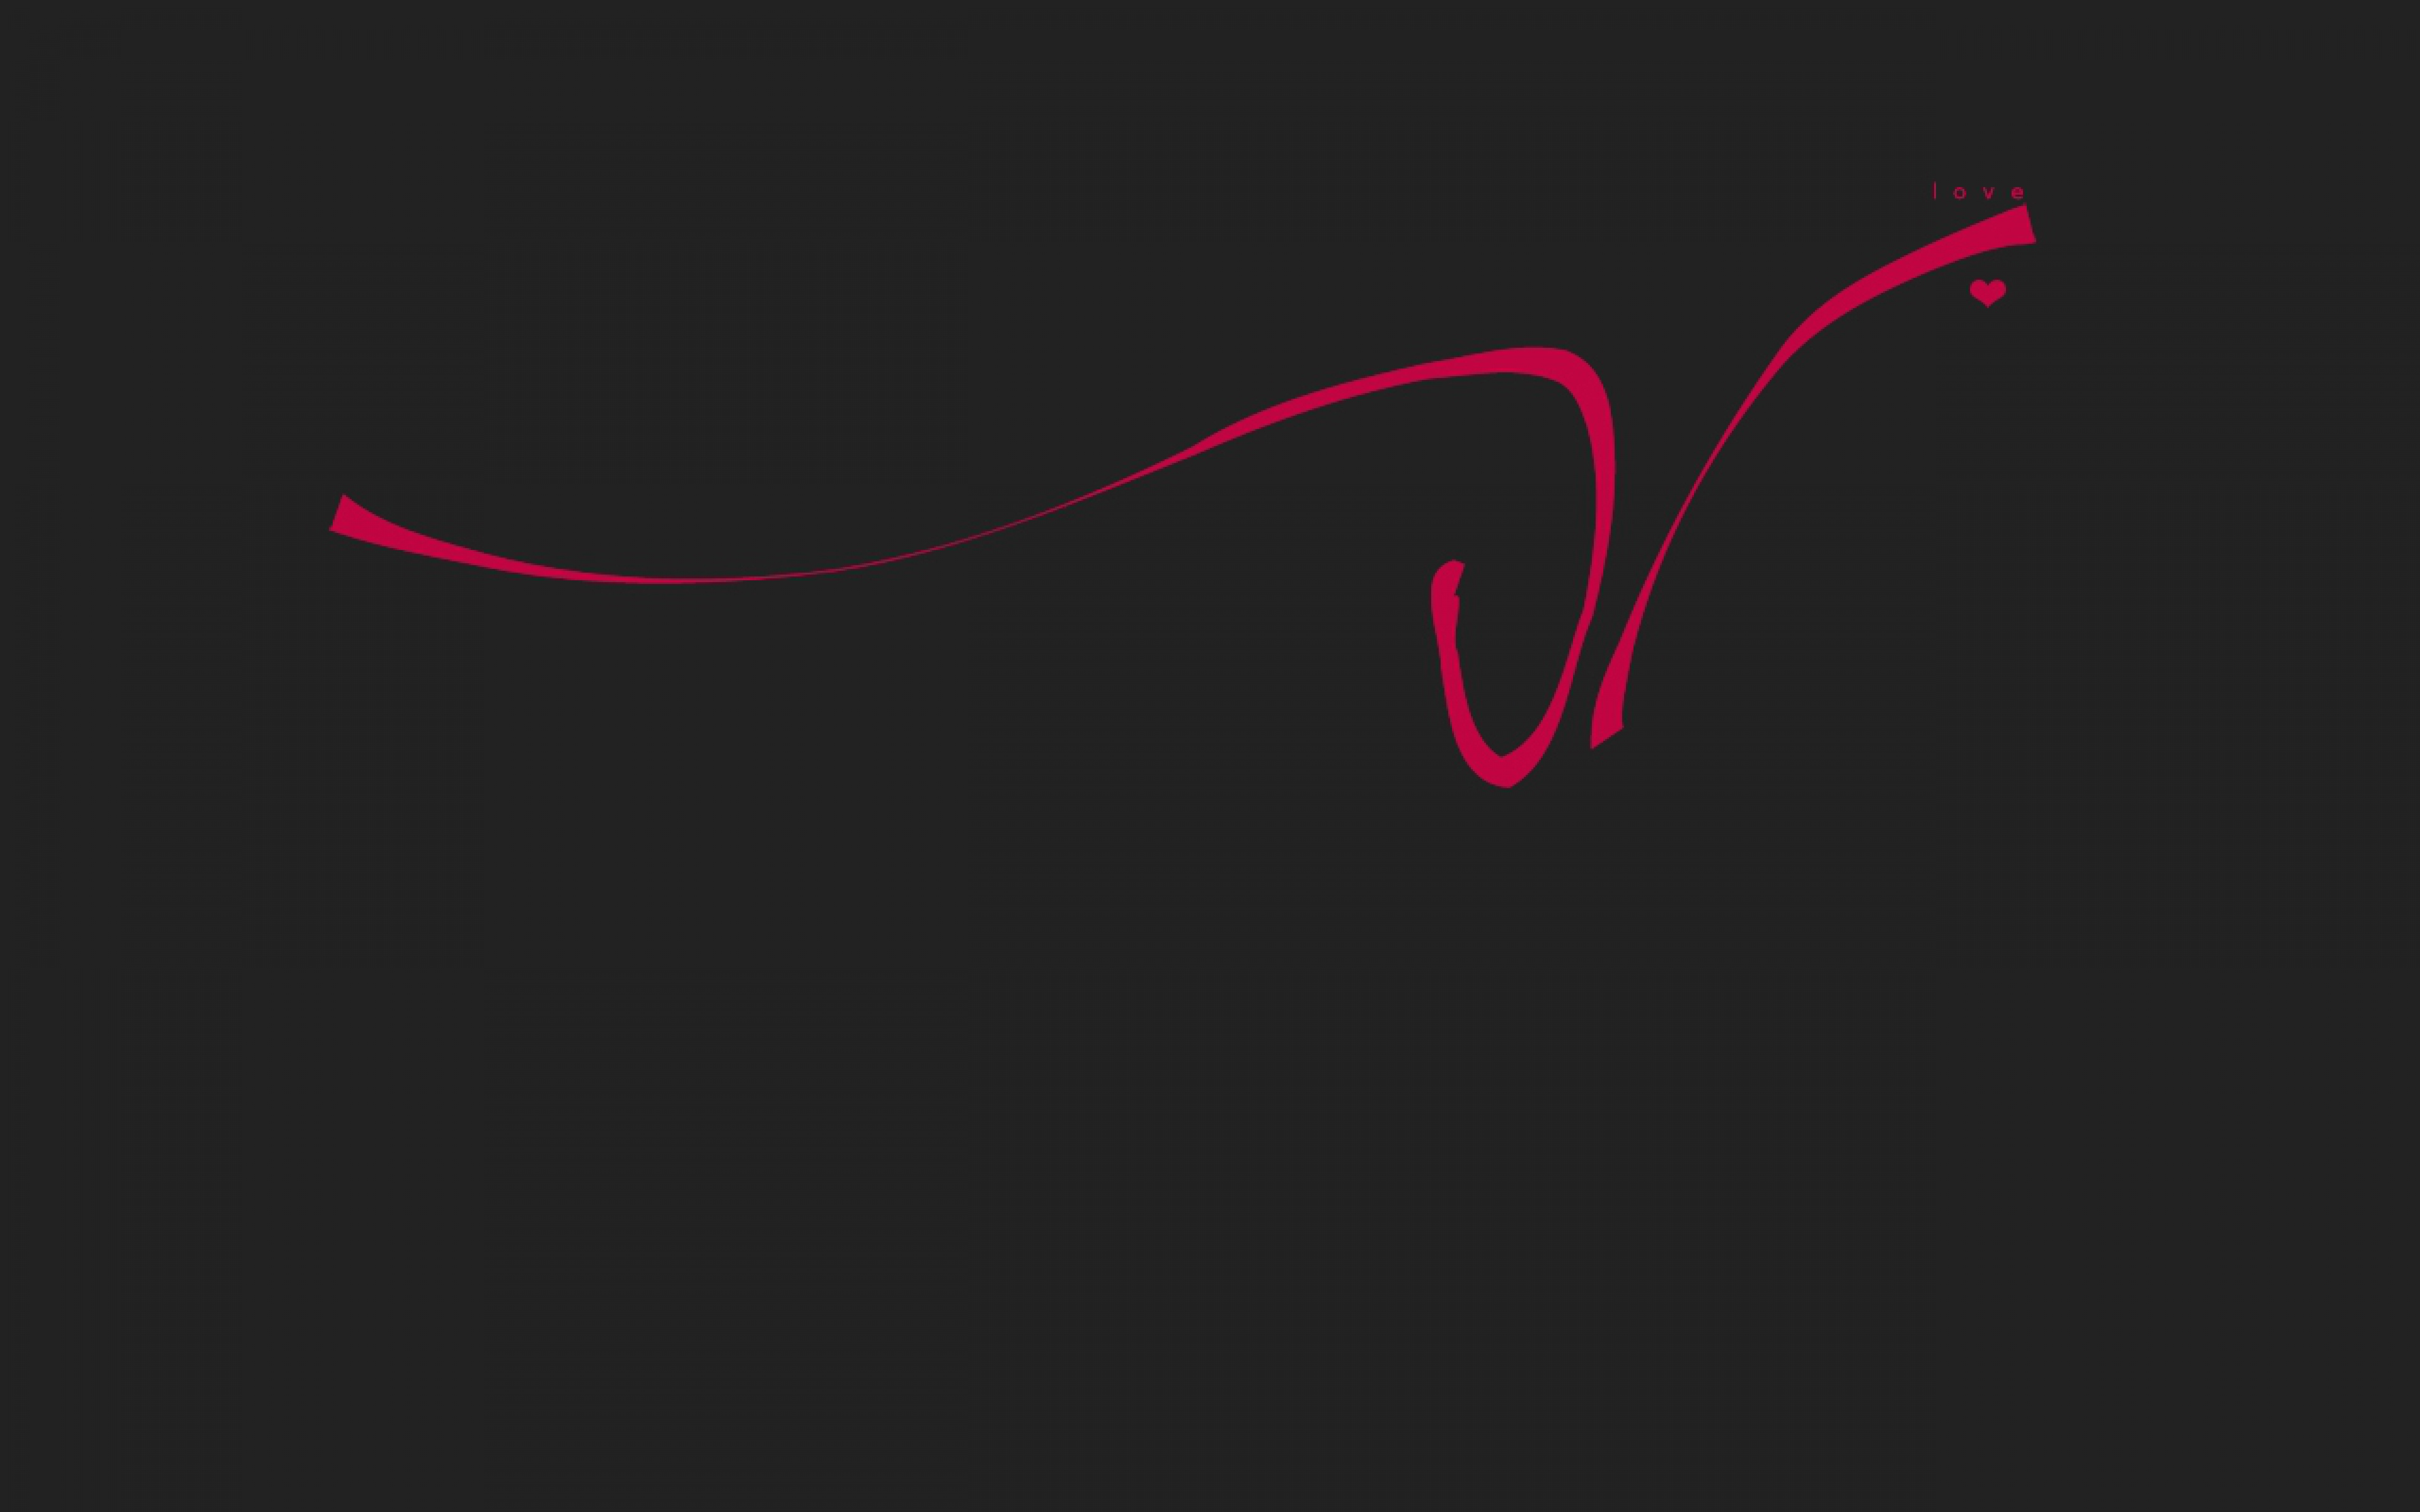 Line Red Inscription Black Wallpaper Background Ultra HD 4K 3840x2400